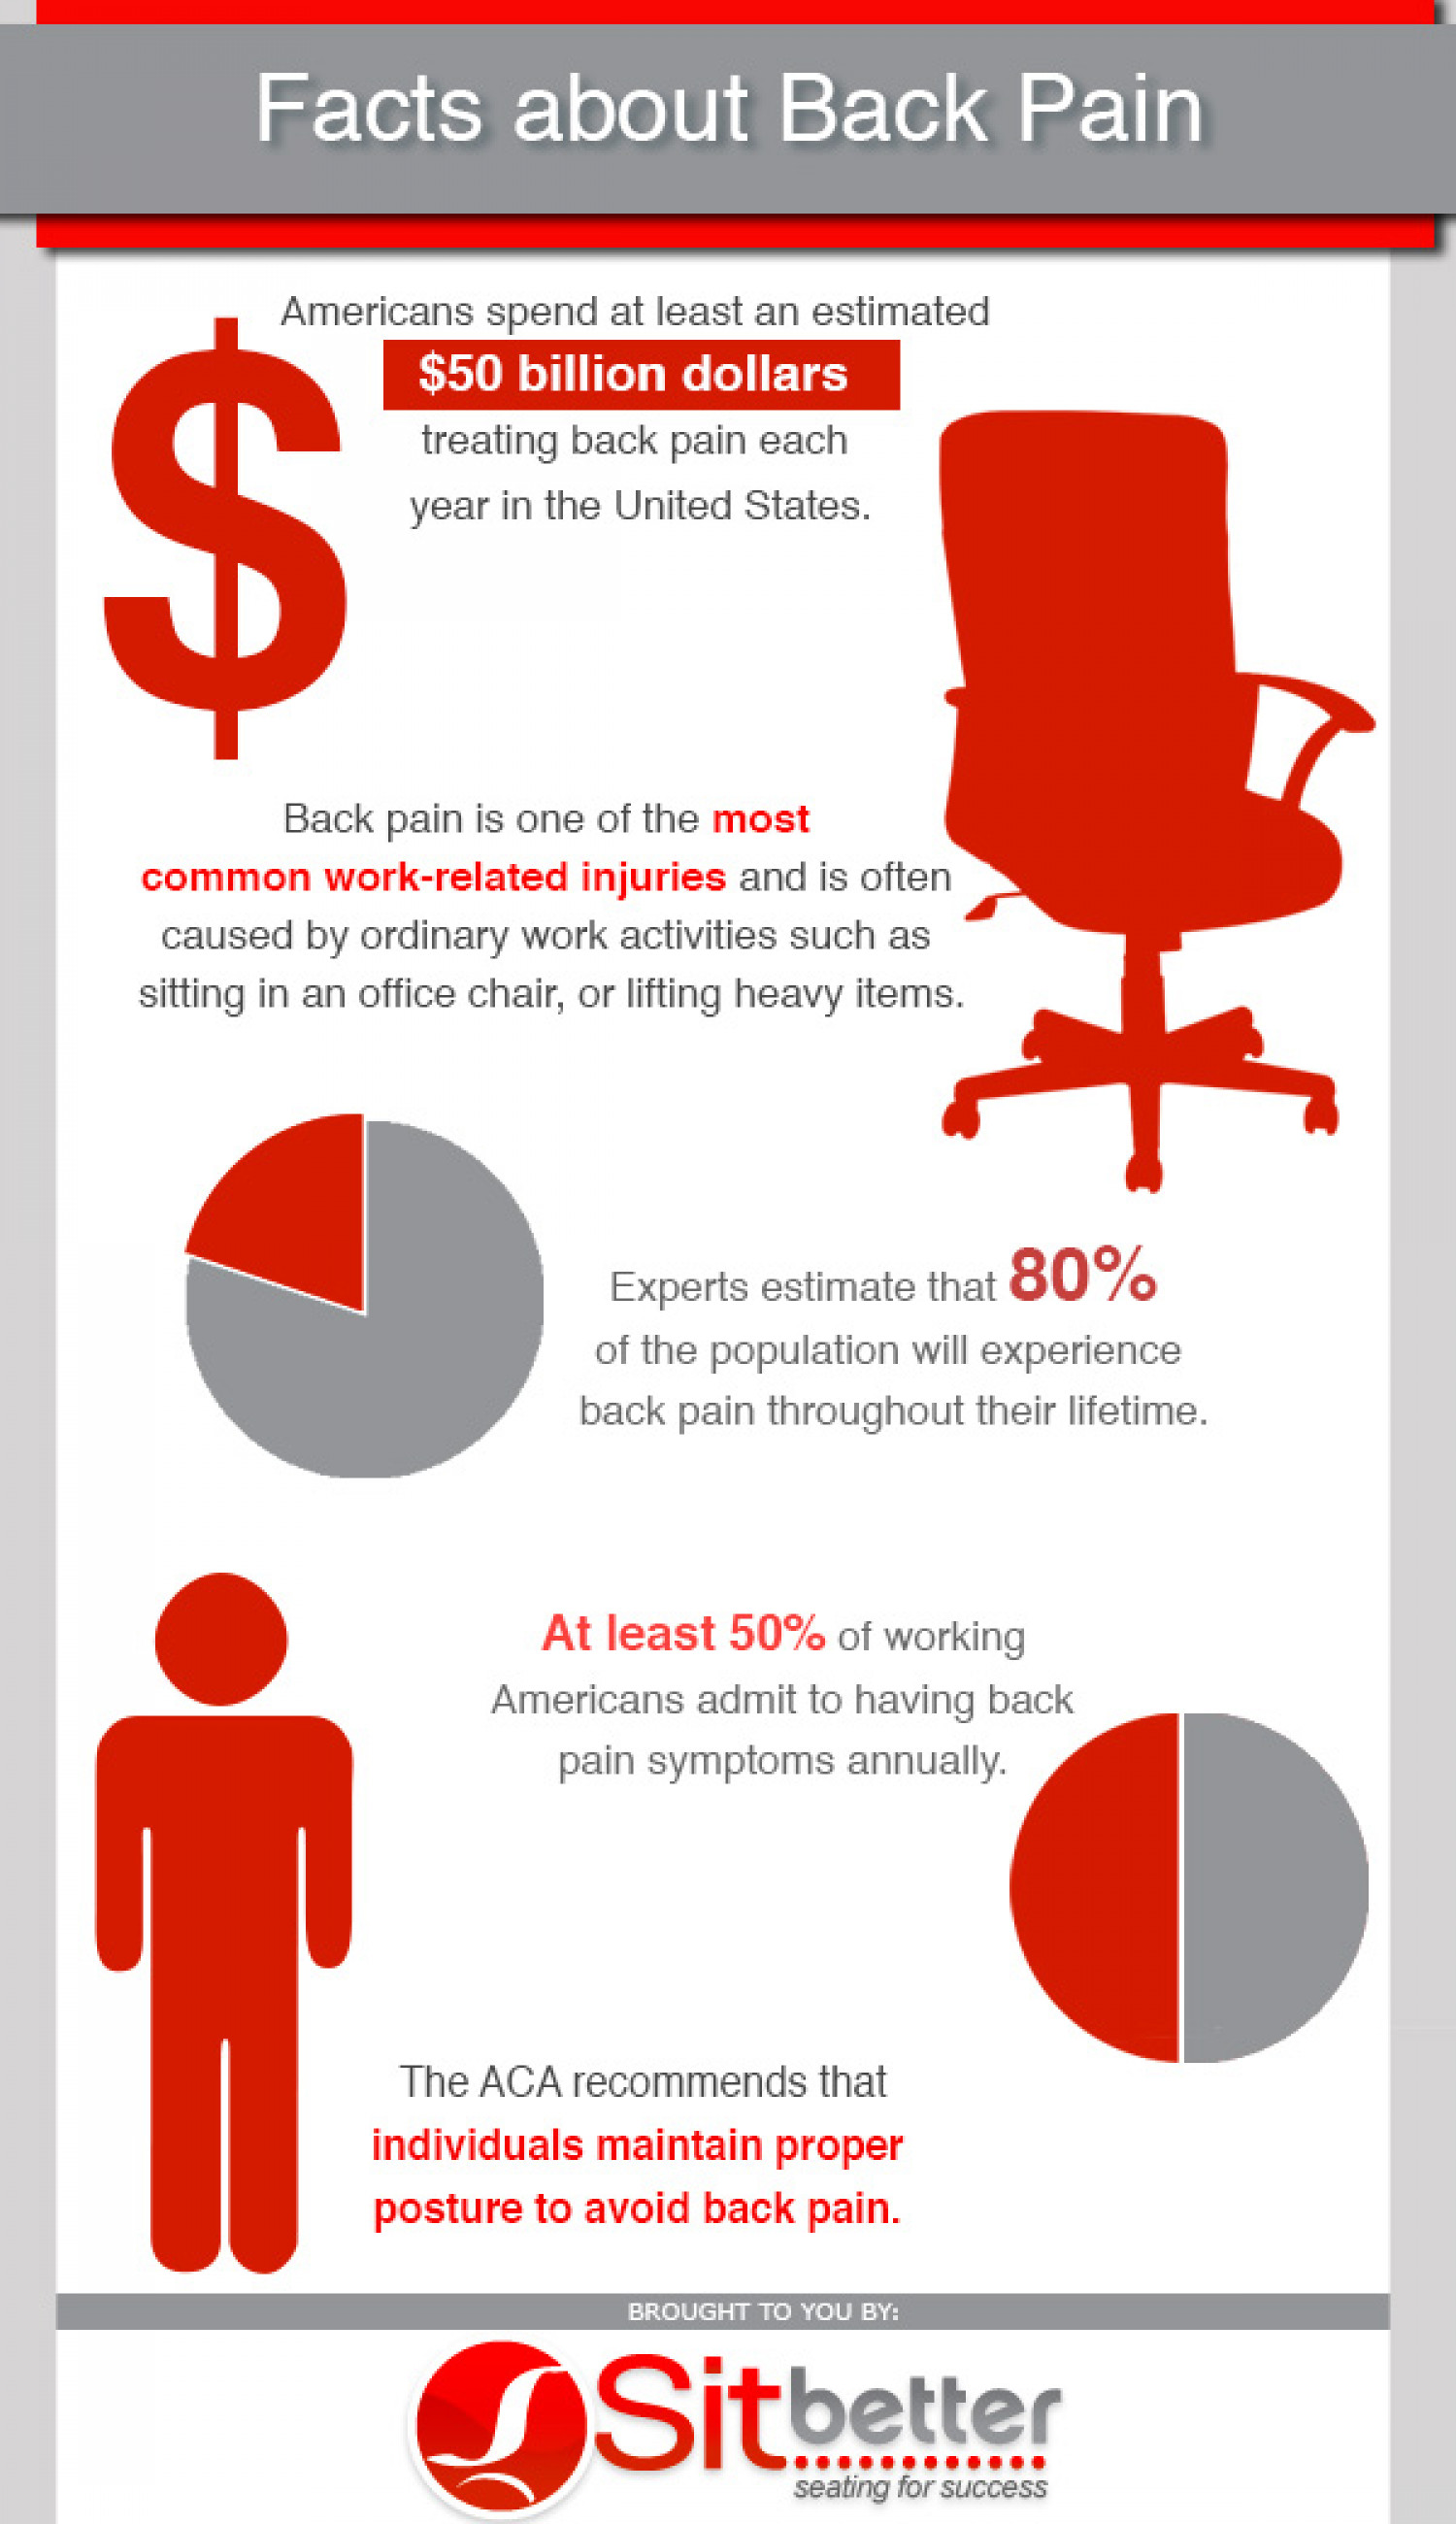 Facts About Back Pain Infographic